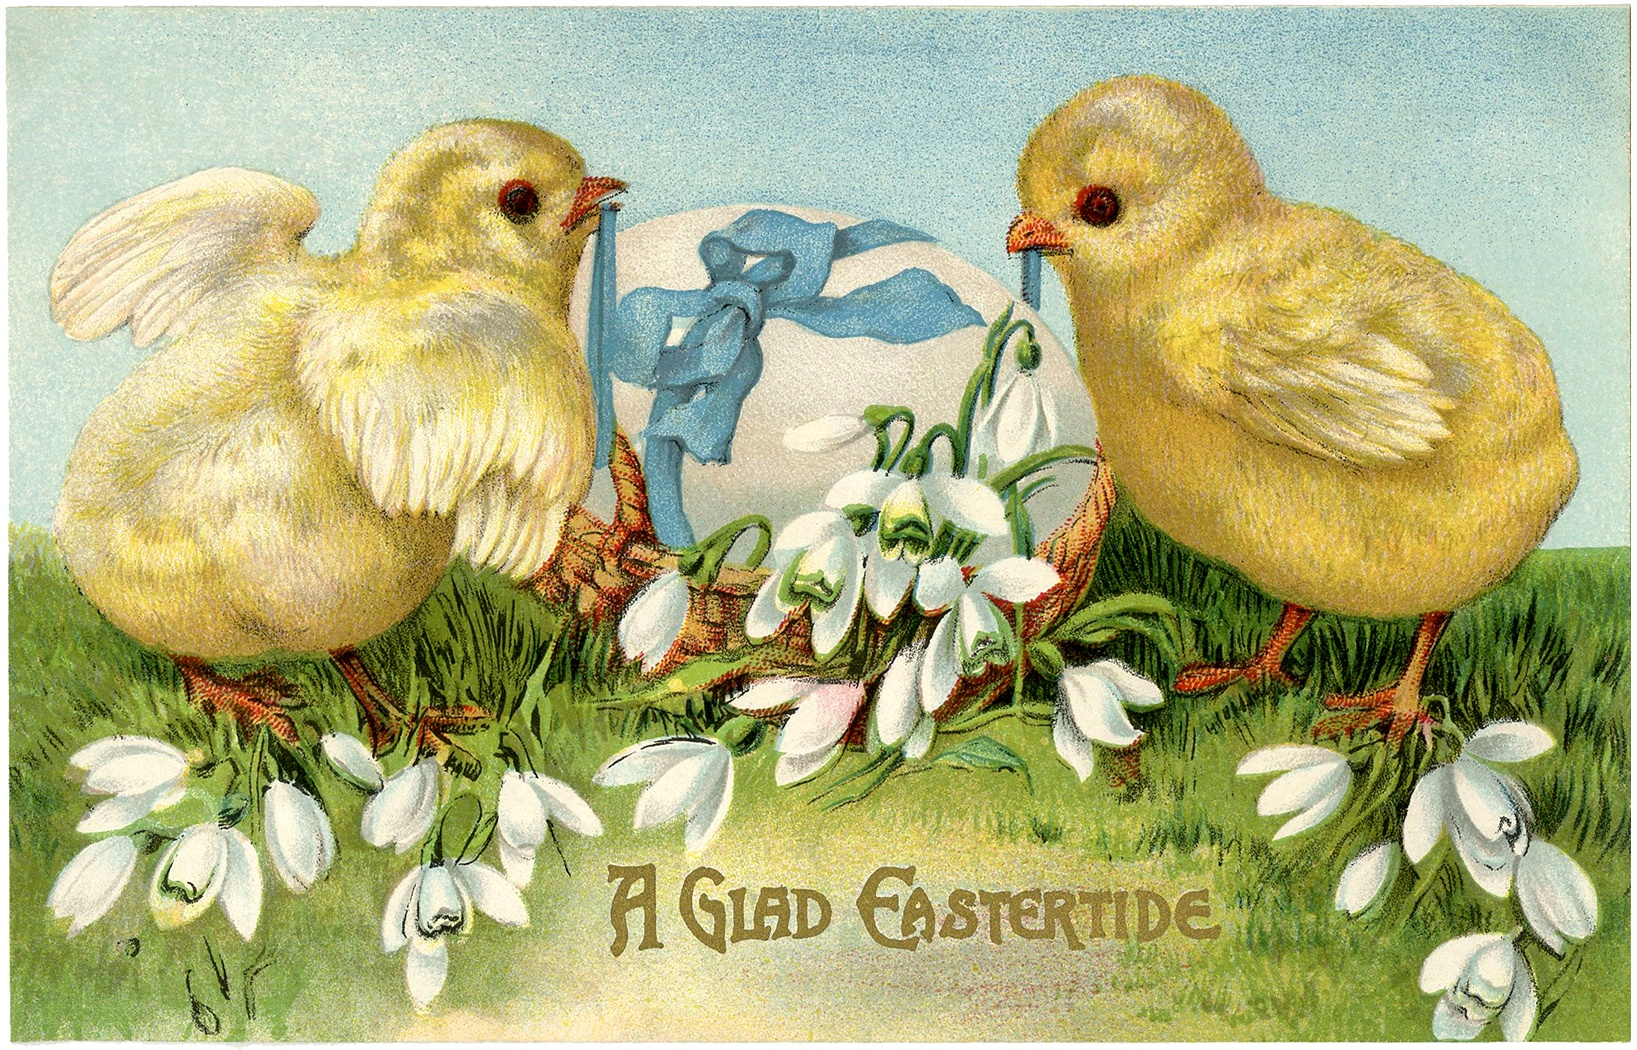 Free Printable Easter Greeting Cards - Azfreebies - Free Printable Easter Greeting Cards